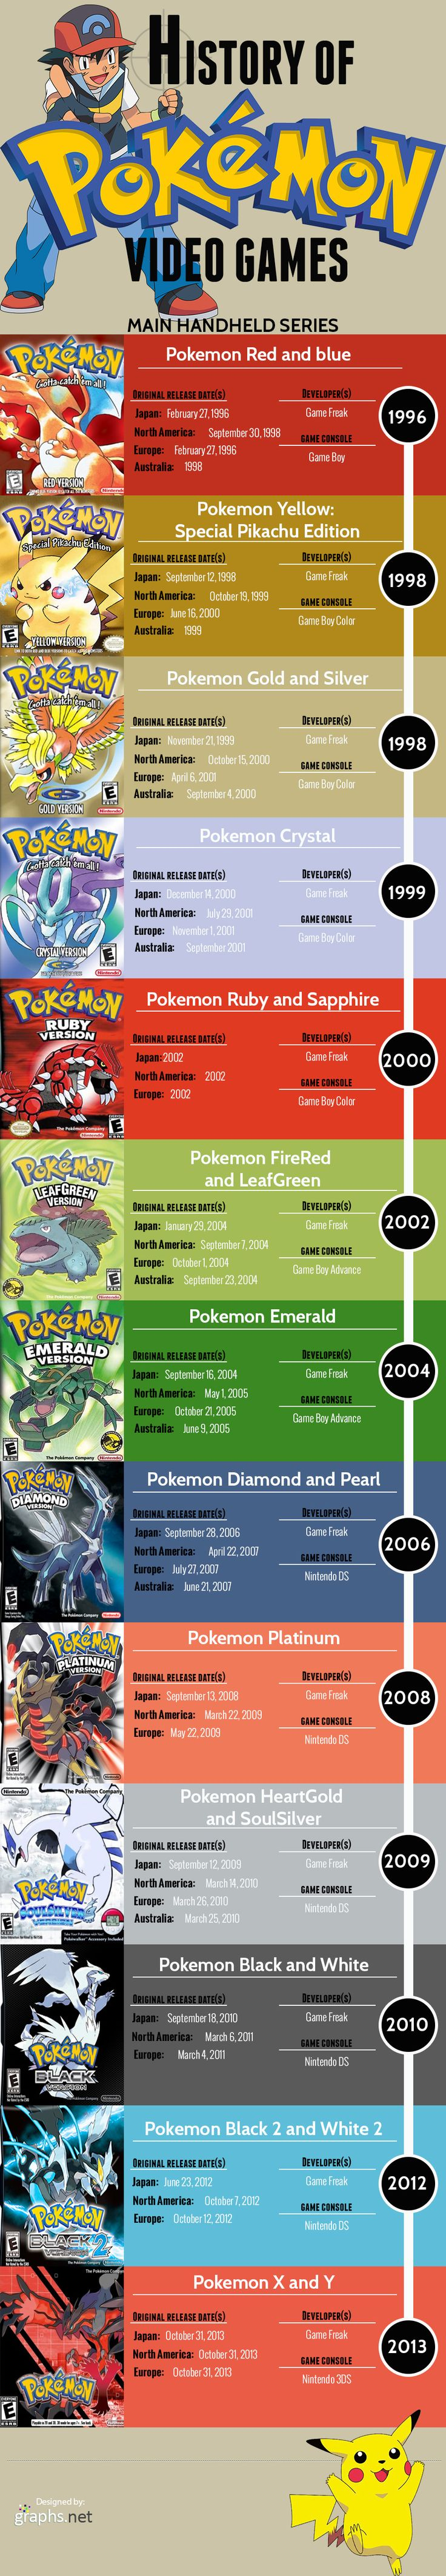 My first pokemon game was fire red. I still remember the day I bought it at Target...good times. Which was your first game?